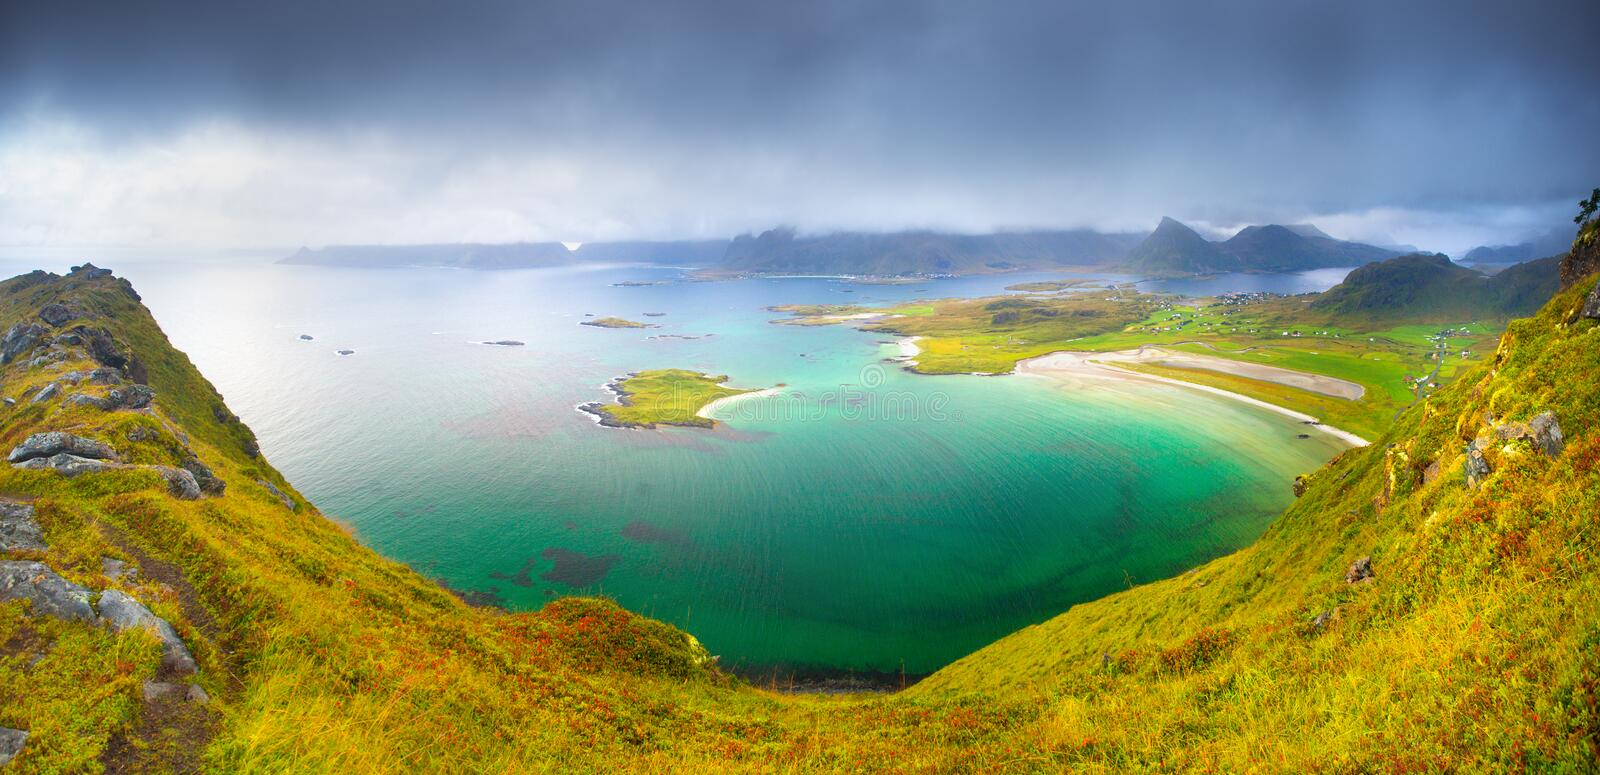 Norway landscape with fjord with emerald water. Panorama of lofoten islands coastline view from mountain peak. Soft green grass on hills and dramatic sky over stock image